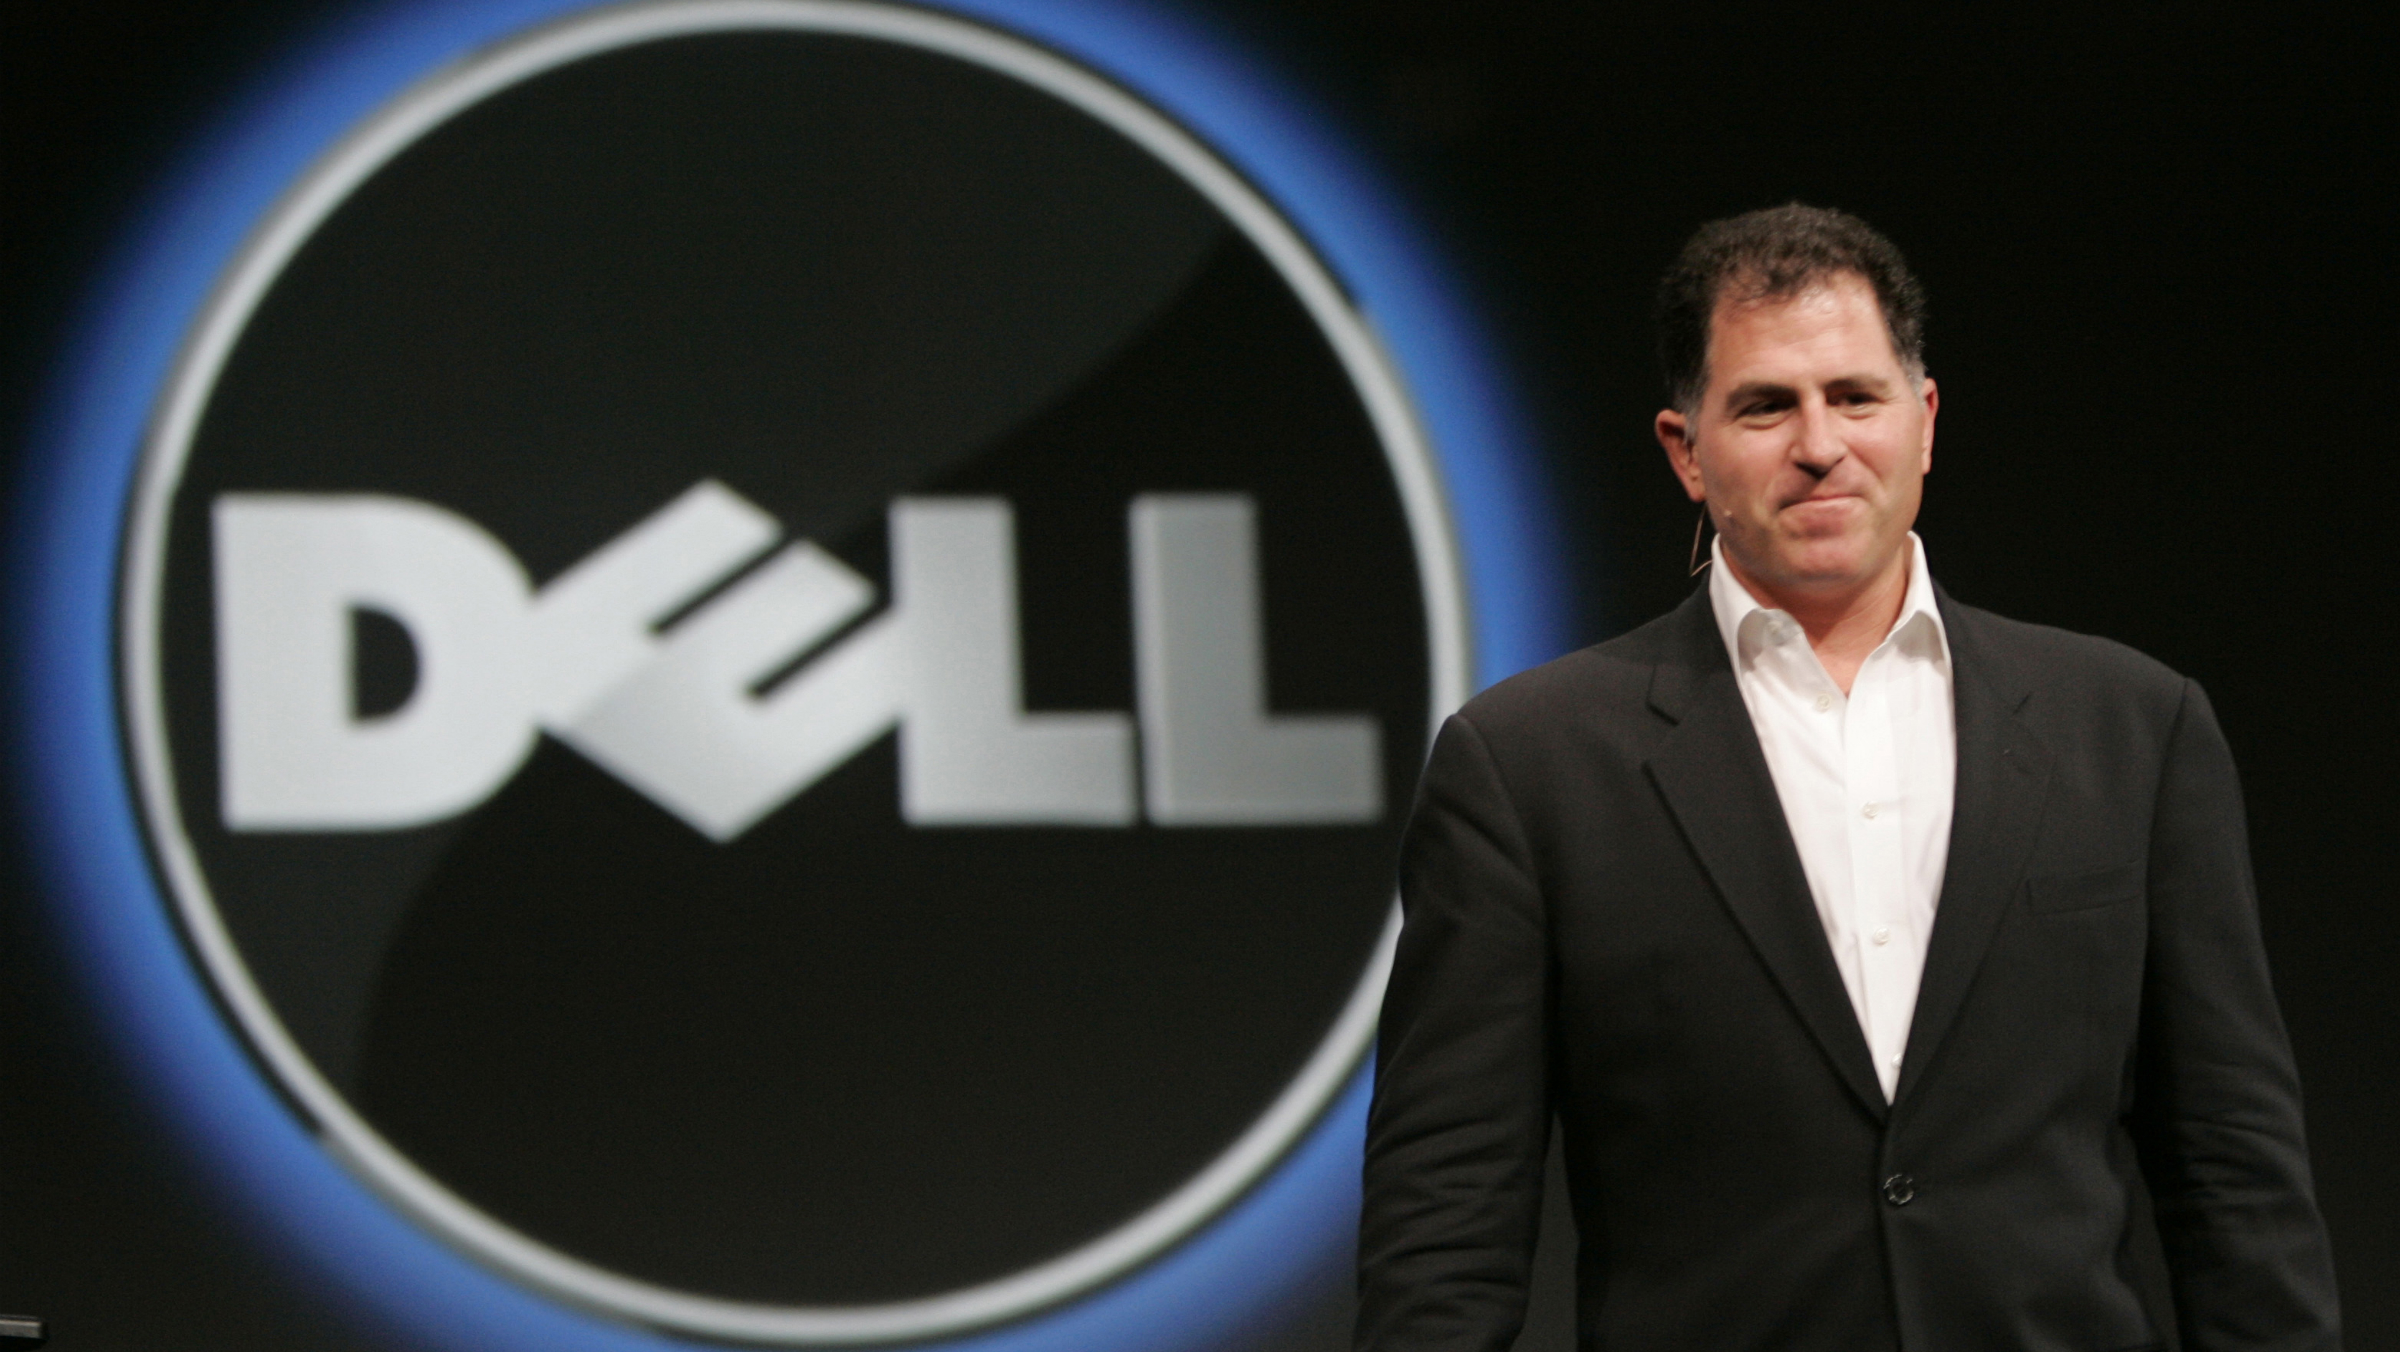 Dell CEO Michael Dell smiles at Oracle Open World conference in San Francisco in this Nov. 14, 2007 file photo. Dell Inc. is reviving plans to buy back shares in the company and will begin to repurchase $10 billion in common stock this week, Dell said Tuesday, Dec. 4, 2007. (AP Photo/Paul Sakuma, file)